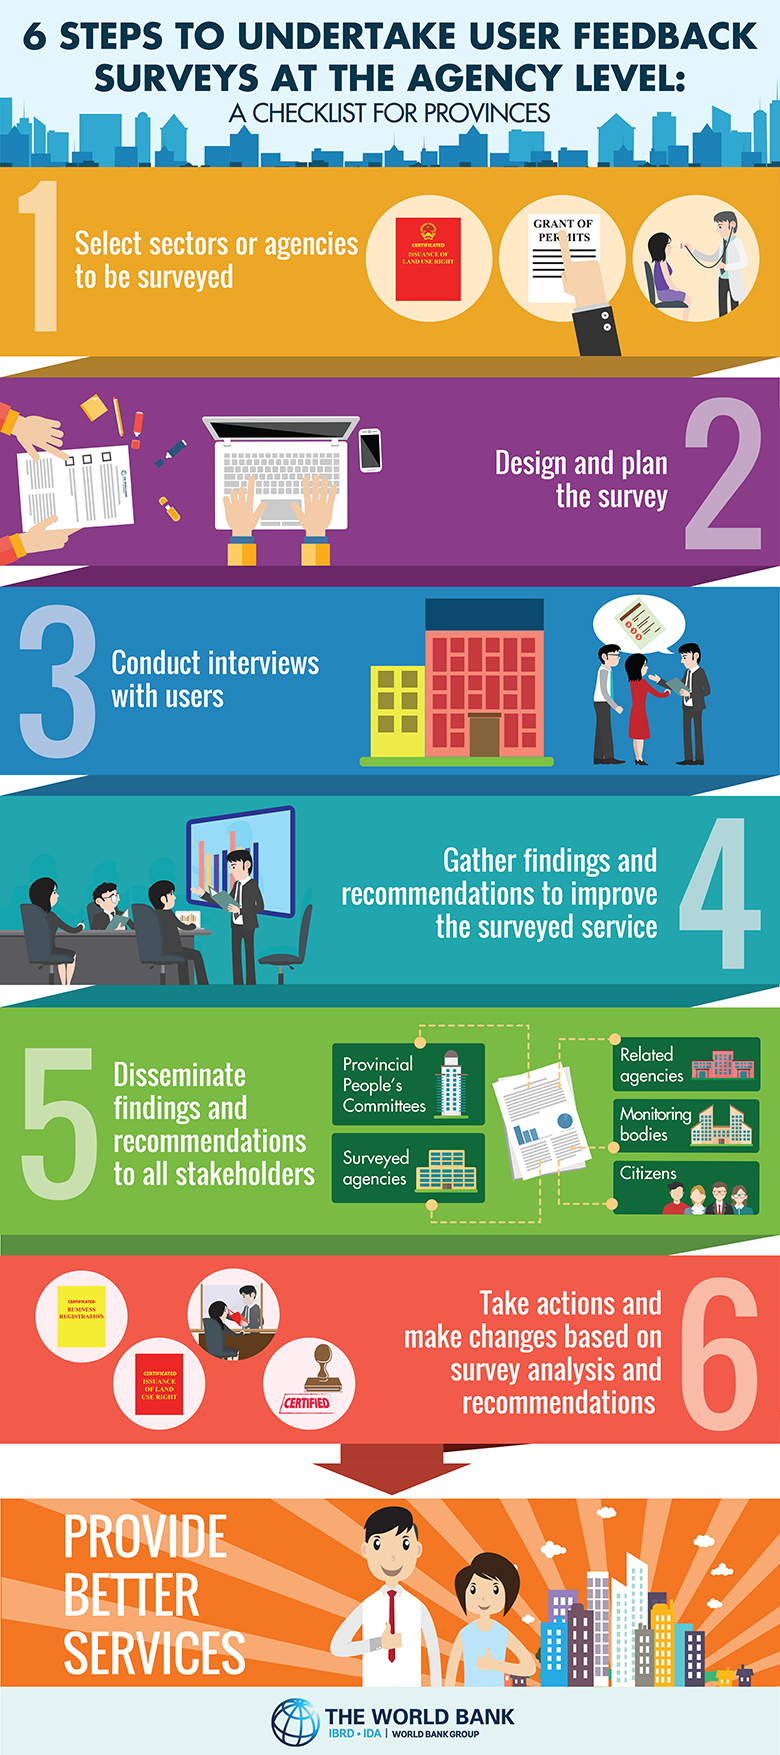 Six Steps to Undertake User Feedback Surveys at the Agency Level in Vietnam